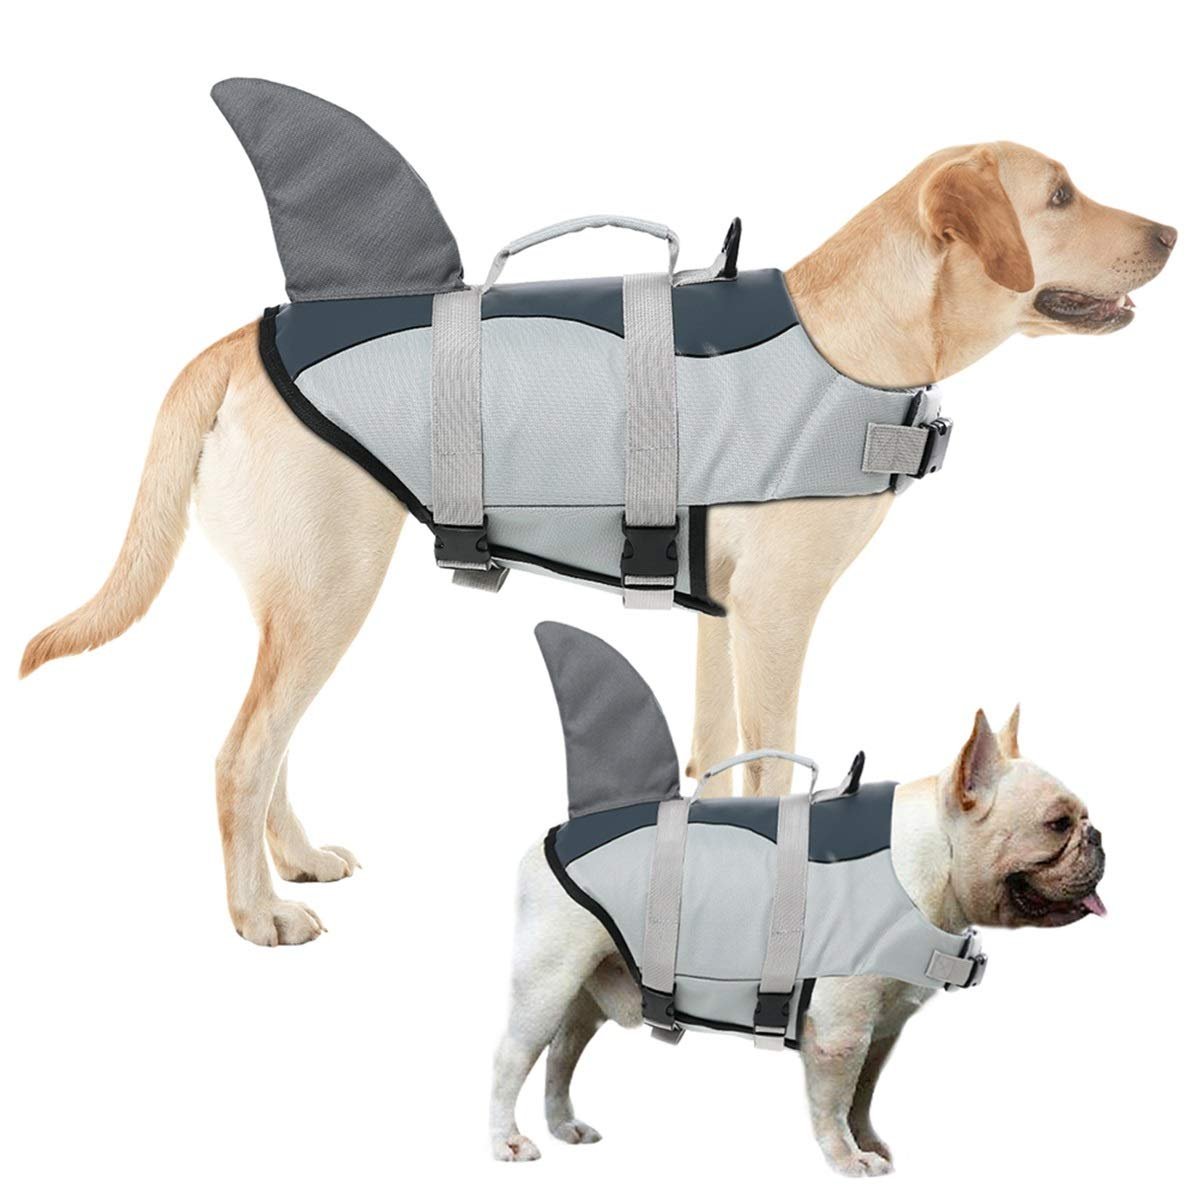 AOFITEE Dog Life Jacket Pet Safety Vest, Adjustable Dog Lifesaver Ripstop Pet Life Preserver with Rescue Handle for Small Medium and Large Dogs (Grey Shark, XL) by AOFITEE